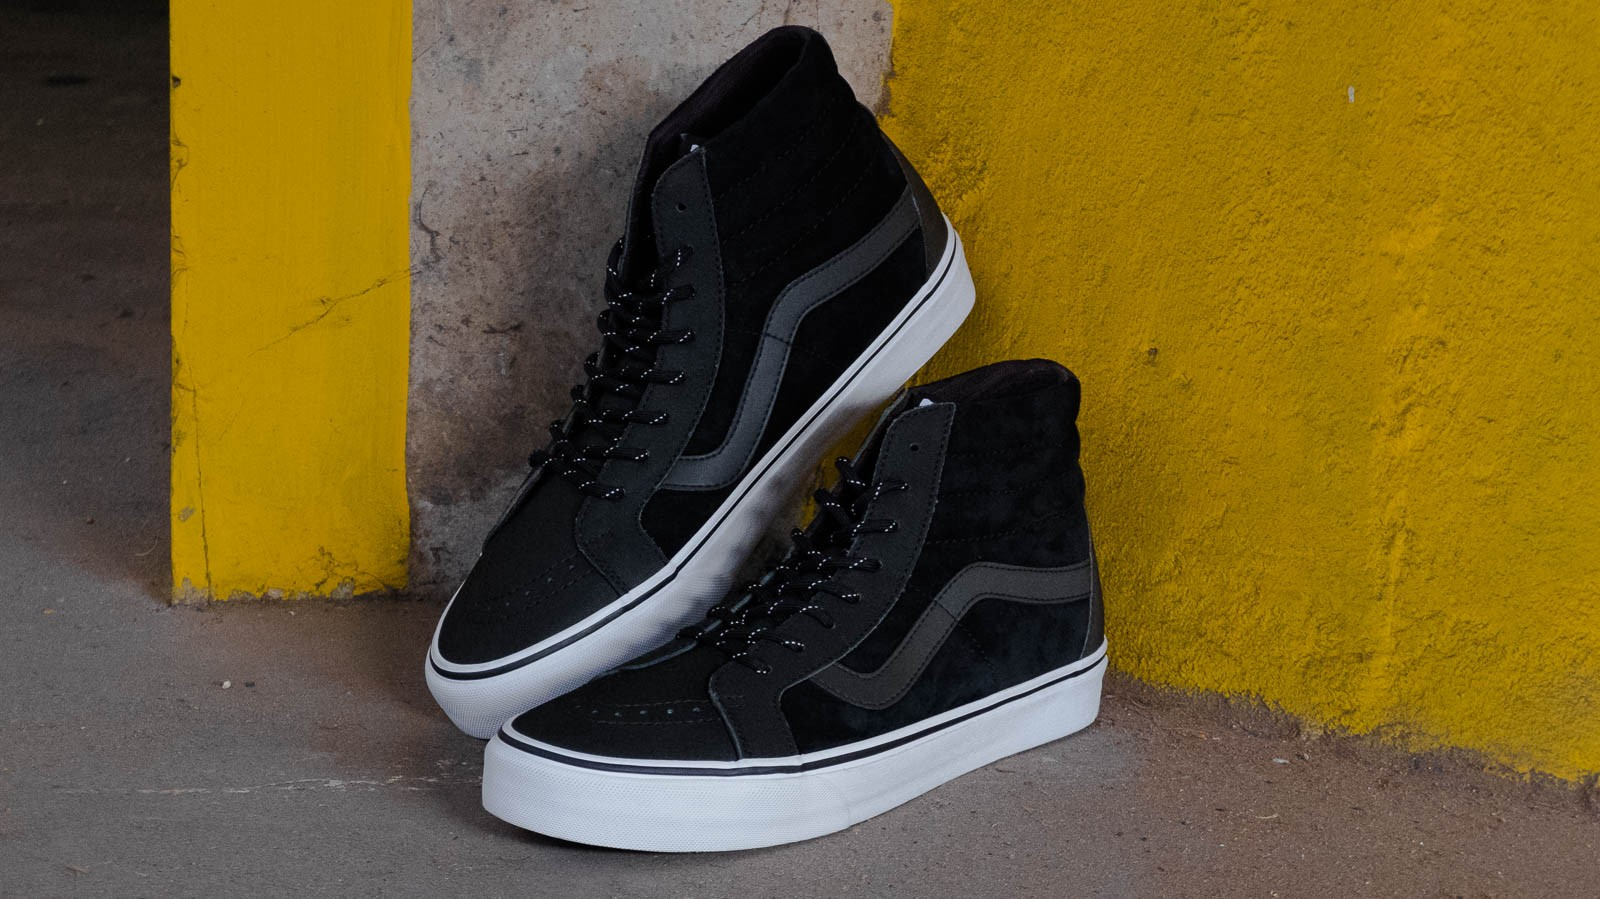 Vans sent us through these cool, urban cycling focussed shoes to try out